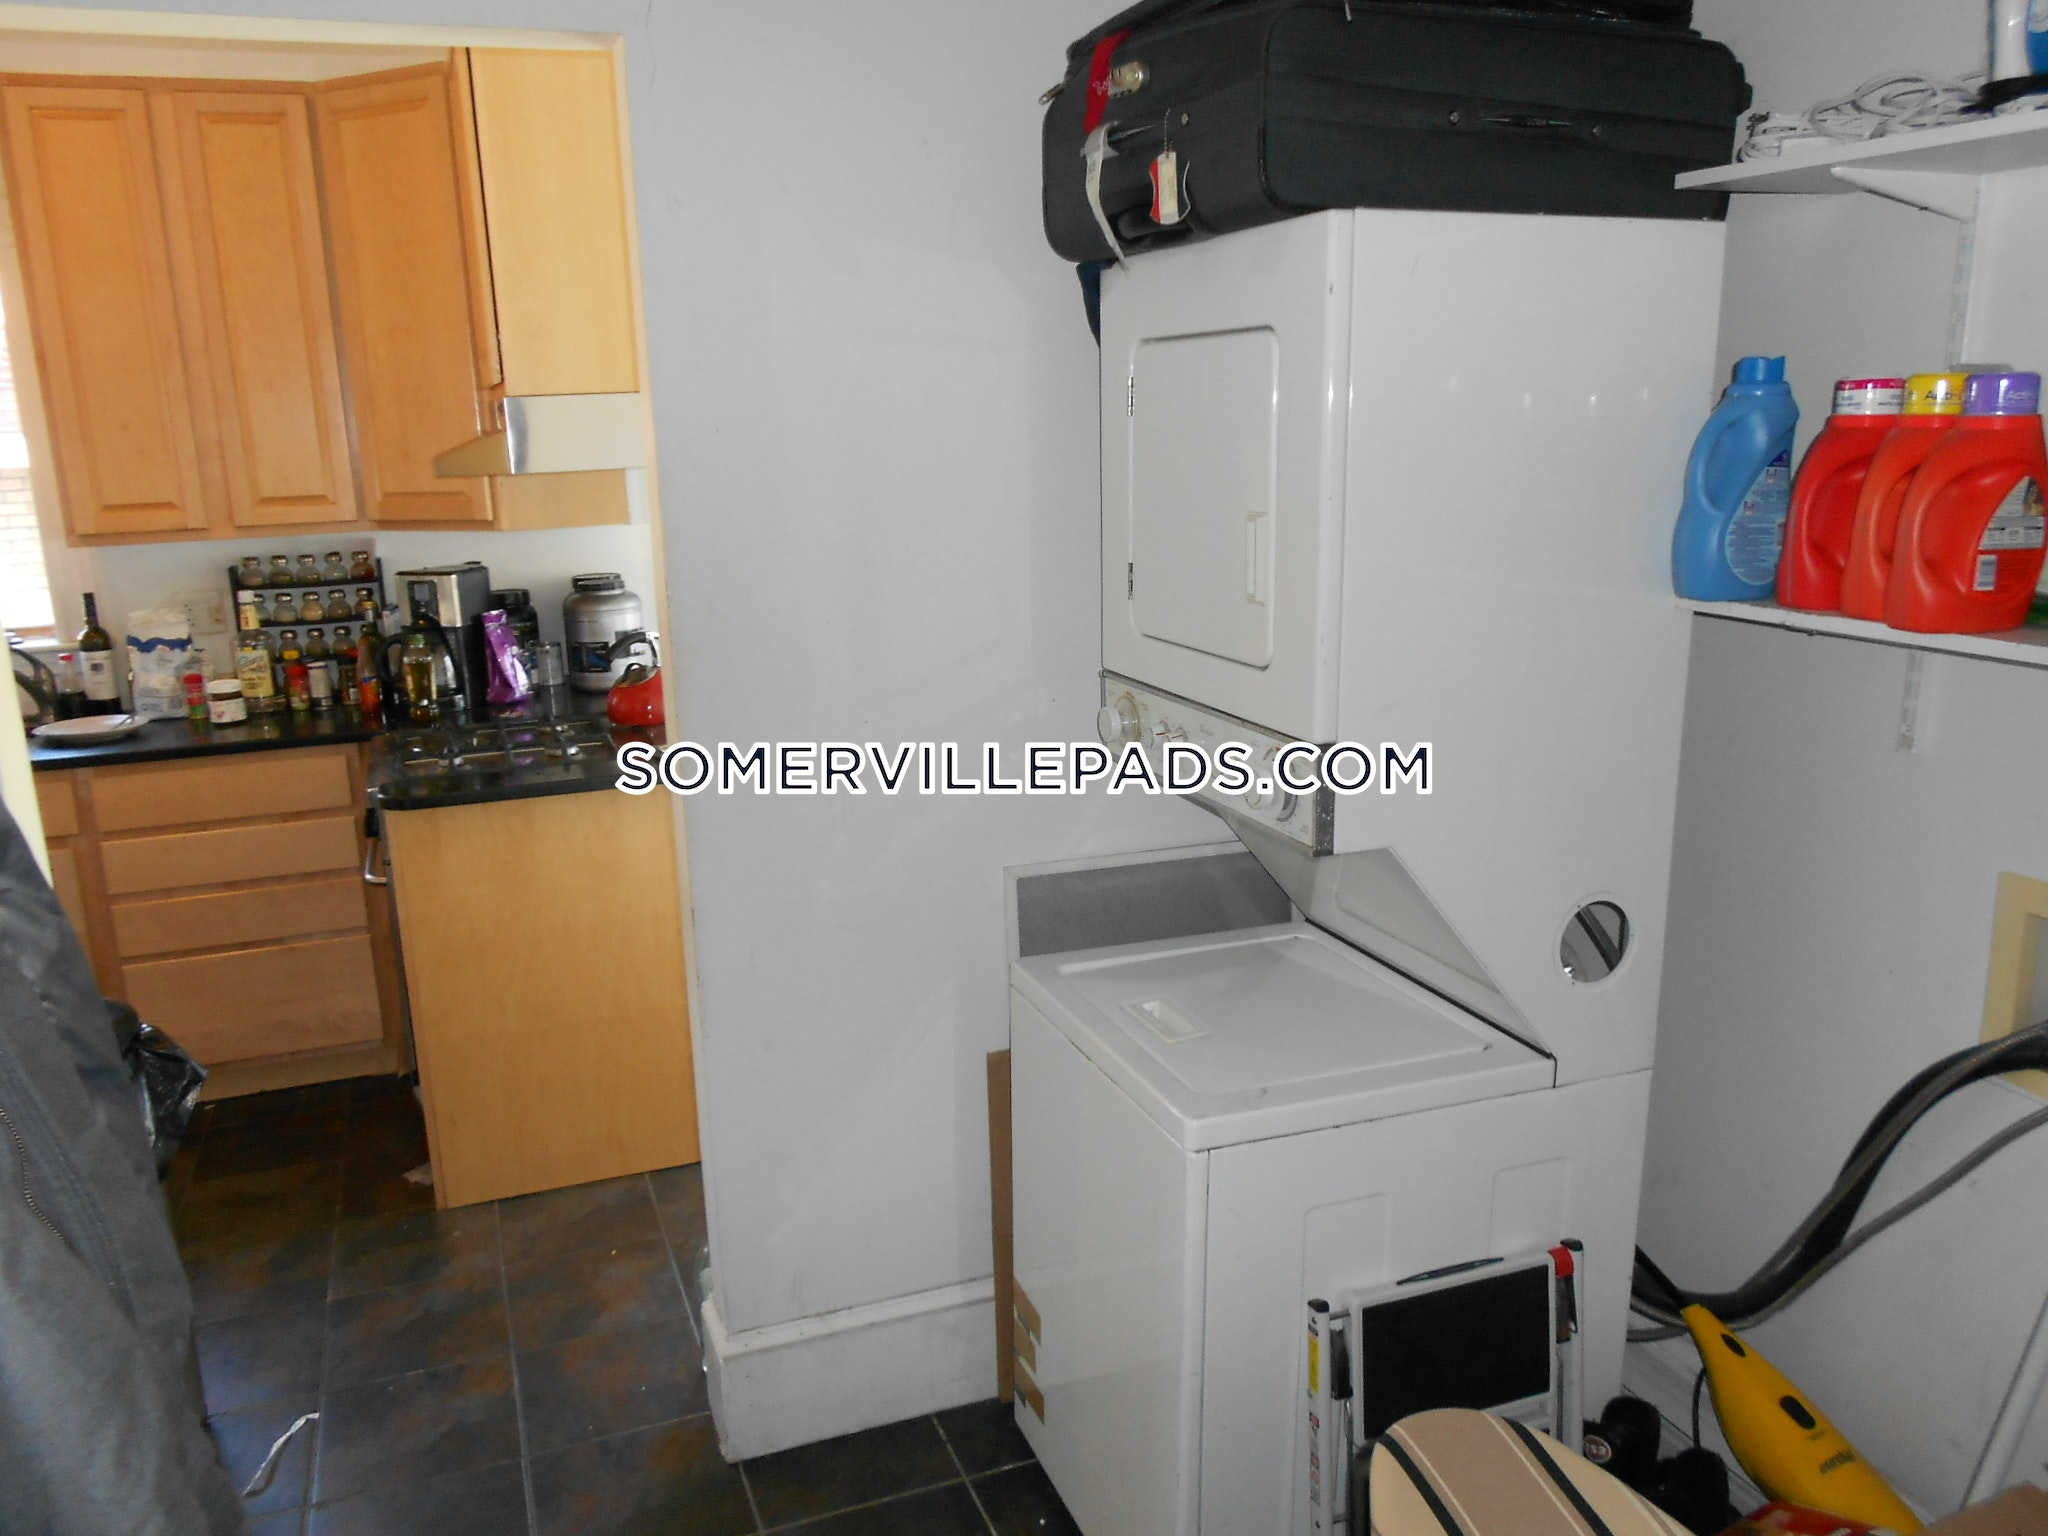 4-beds-1-bath-somerville-porter-square-4400-429547